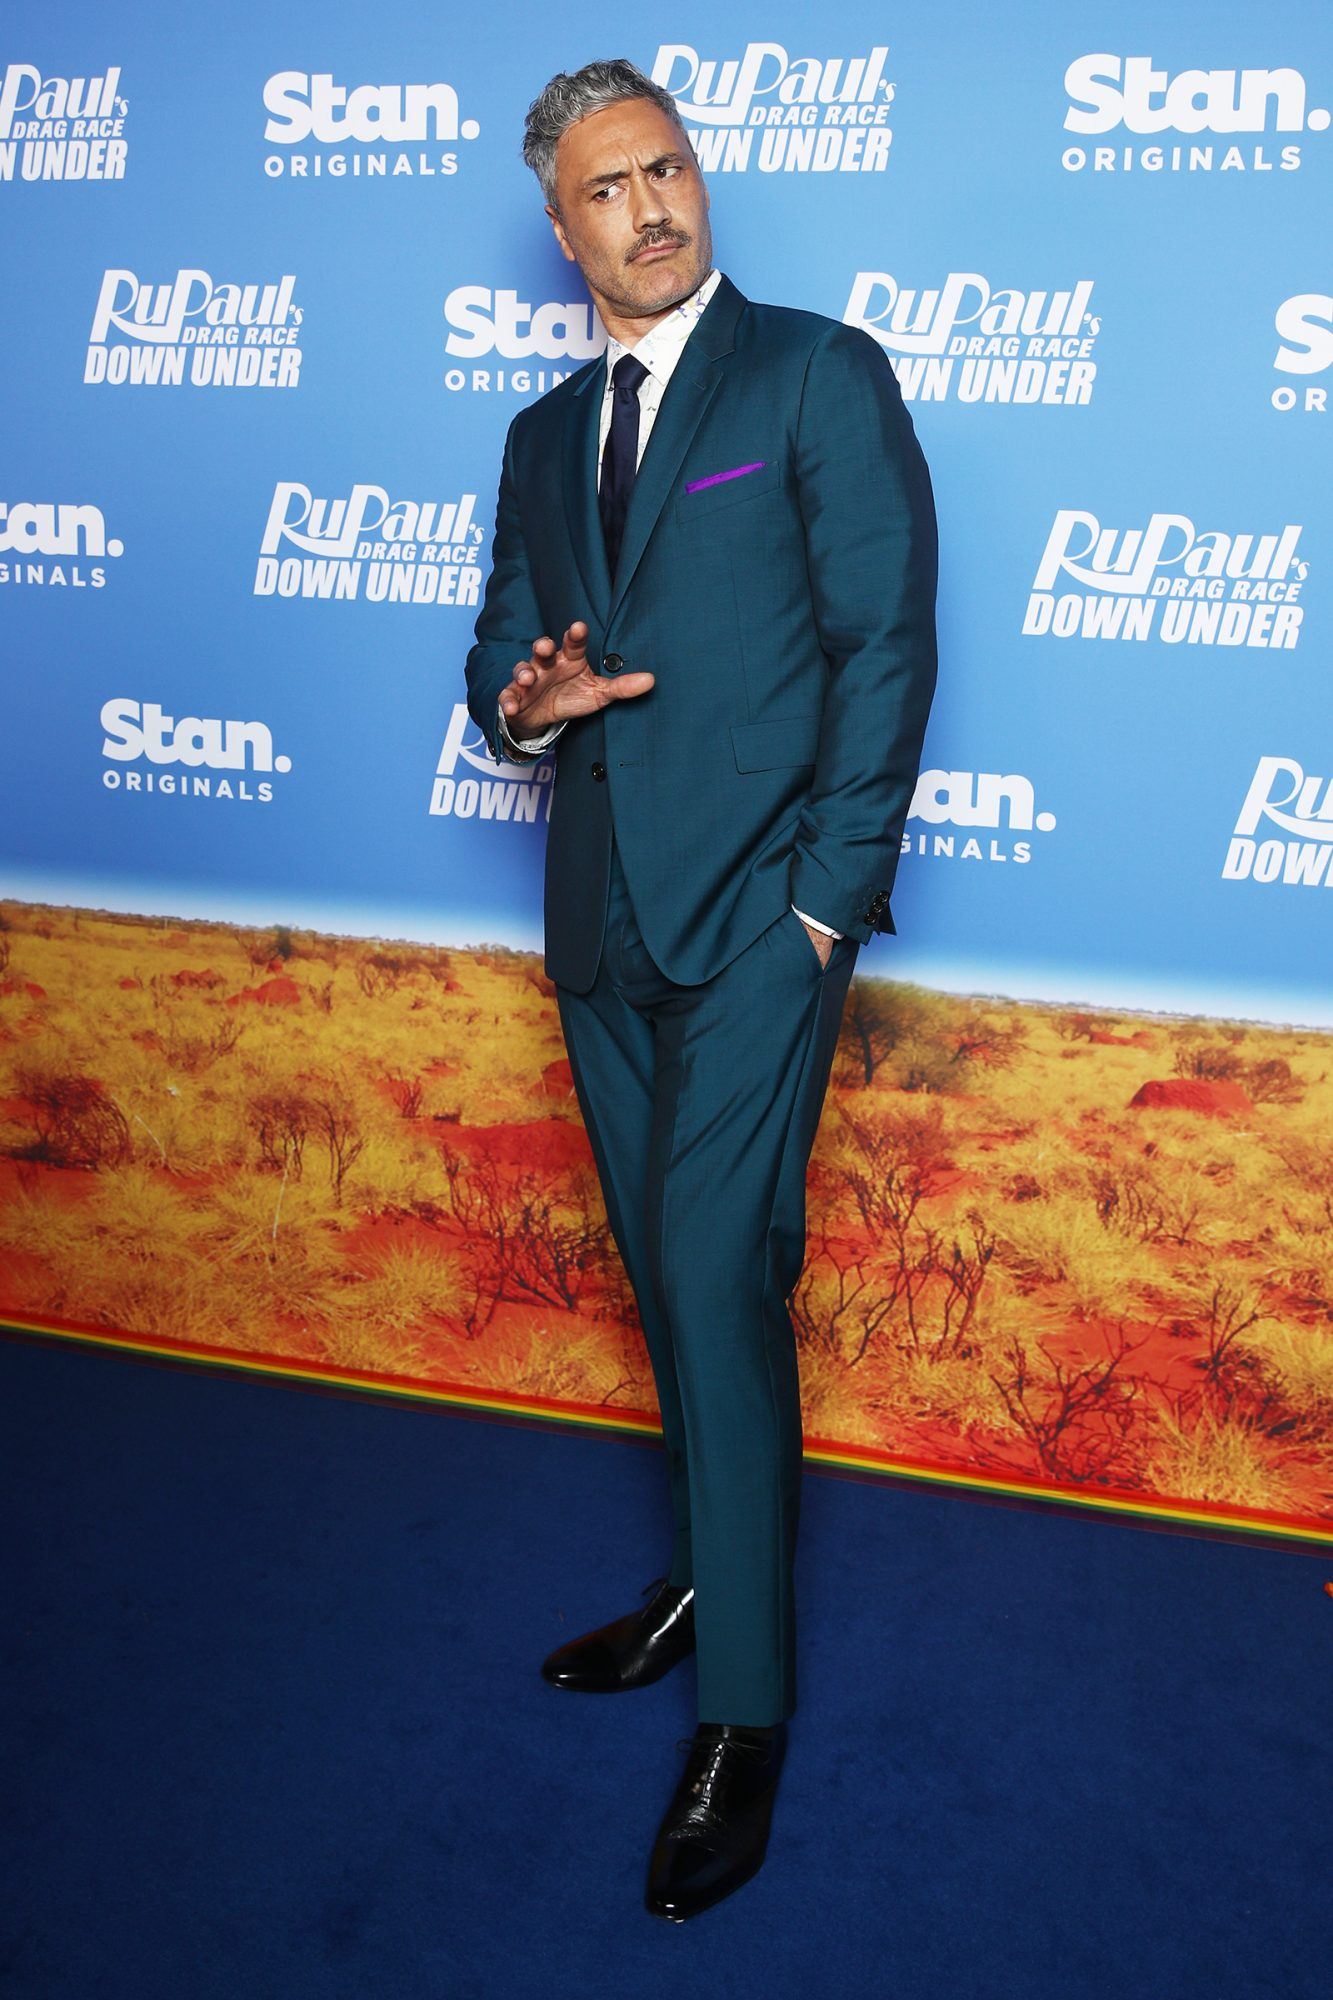 Taika Waititi attends the premiere of RuPaul's Drag Race Down Under at Sydney Opera House on April 30, 2021 in Sydney, Australia